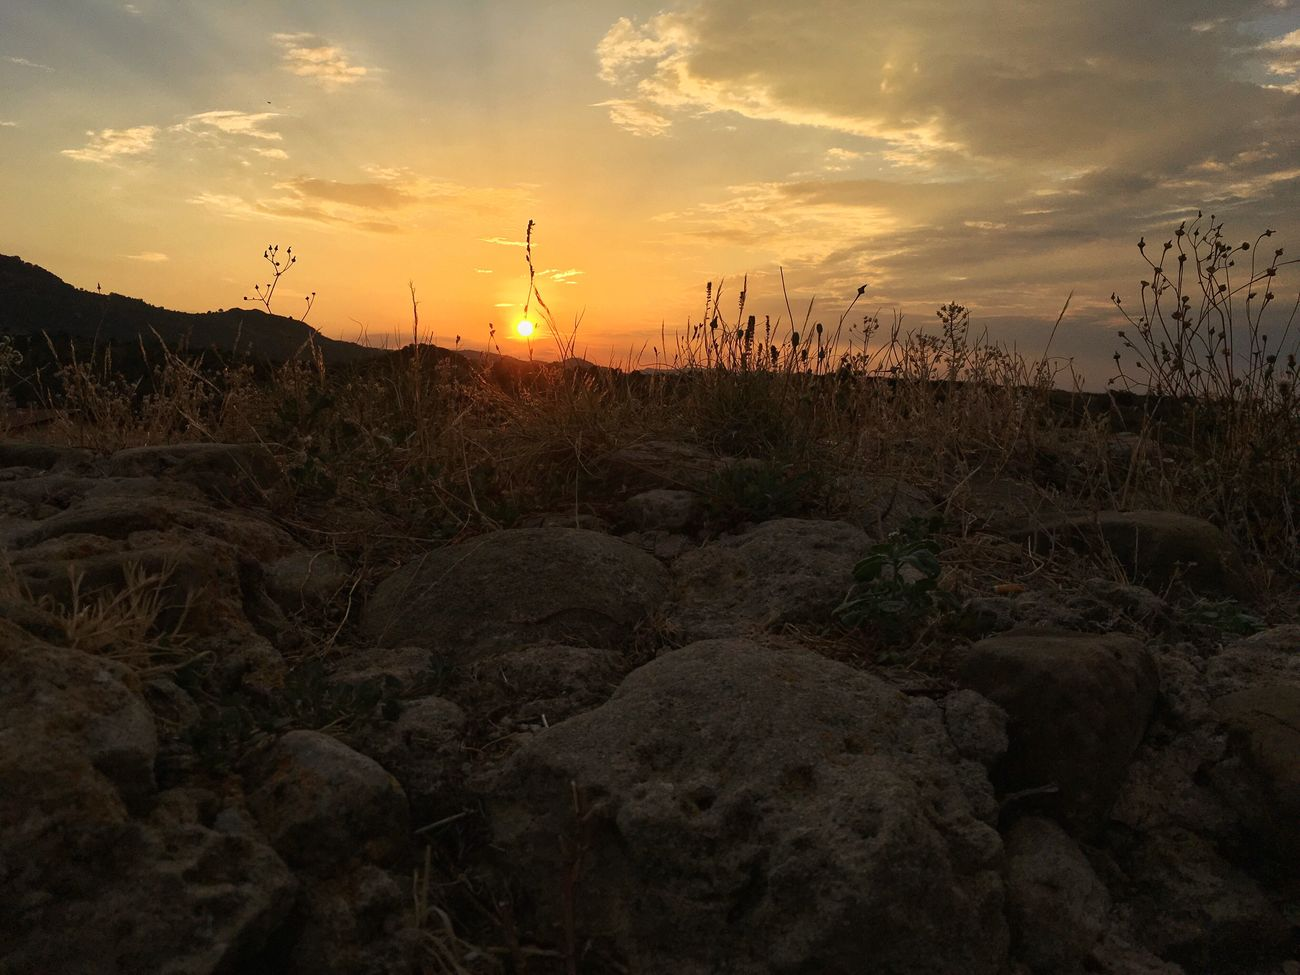 Light And Shadow Sun Beauty In Nature Landscape Nature Sky Dramatic Sky Sunset Sunset_collection Panorama Summertime Italia Calabria My Favorite Place Italy Summer Outdoors Orange Color Tranquility Taking Photos